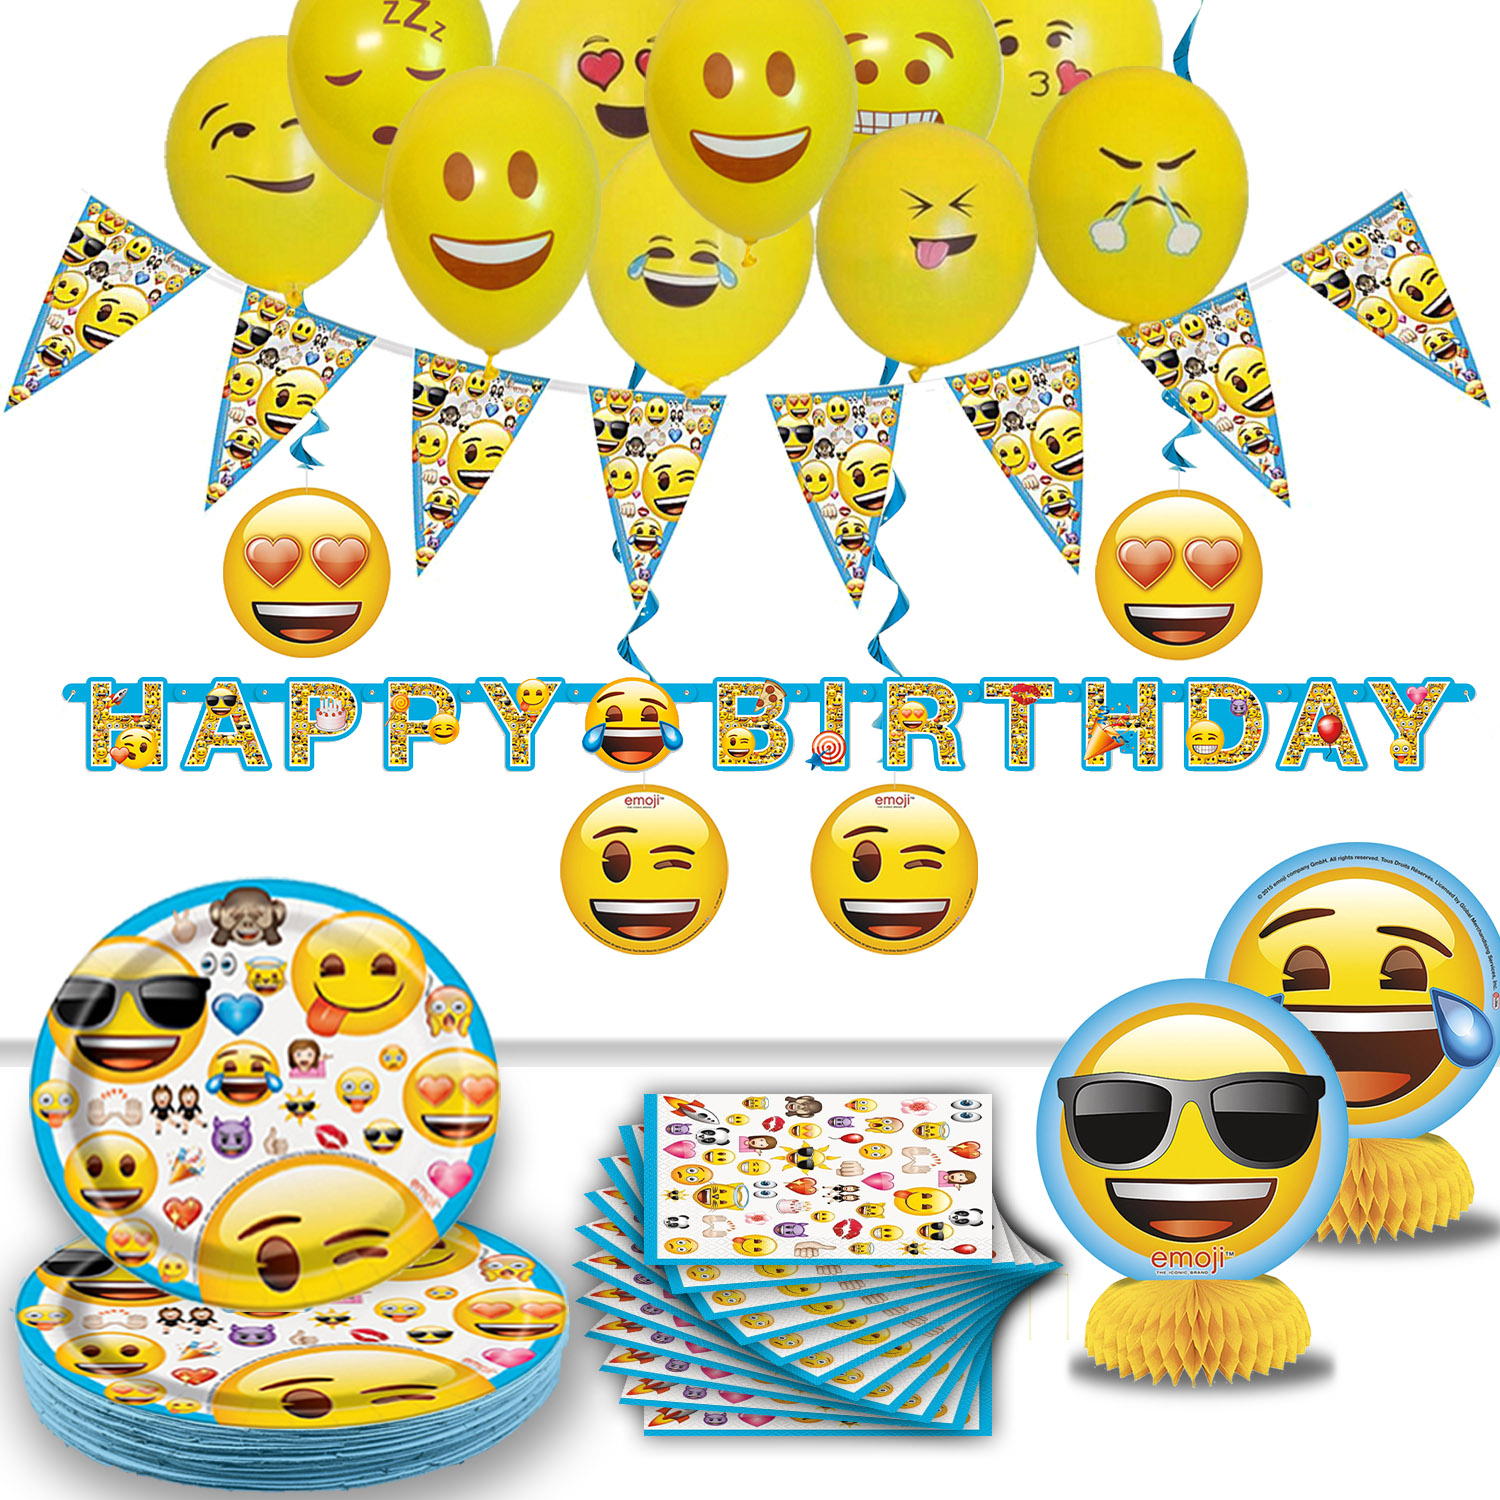 Emoji Birthday Party -16 Guest- Supplies, Decorations, Balloons - Plates, Napkins, Happy Birthday Banner, Pennant Banner, Hanging Swirls, Emoji Balloons, Table Centerpieces. Emoji Tableware & Deco